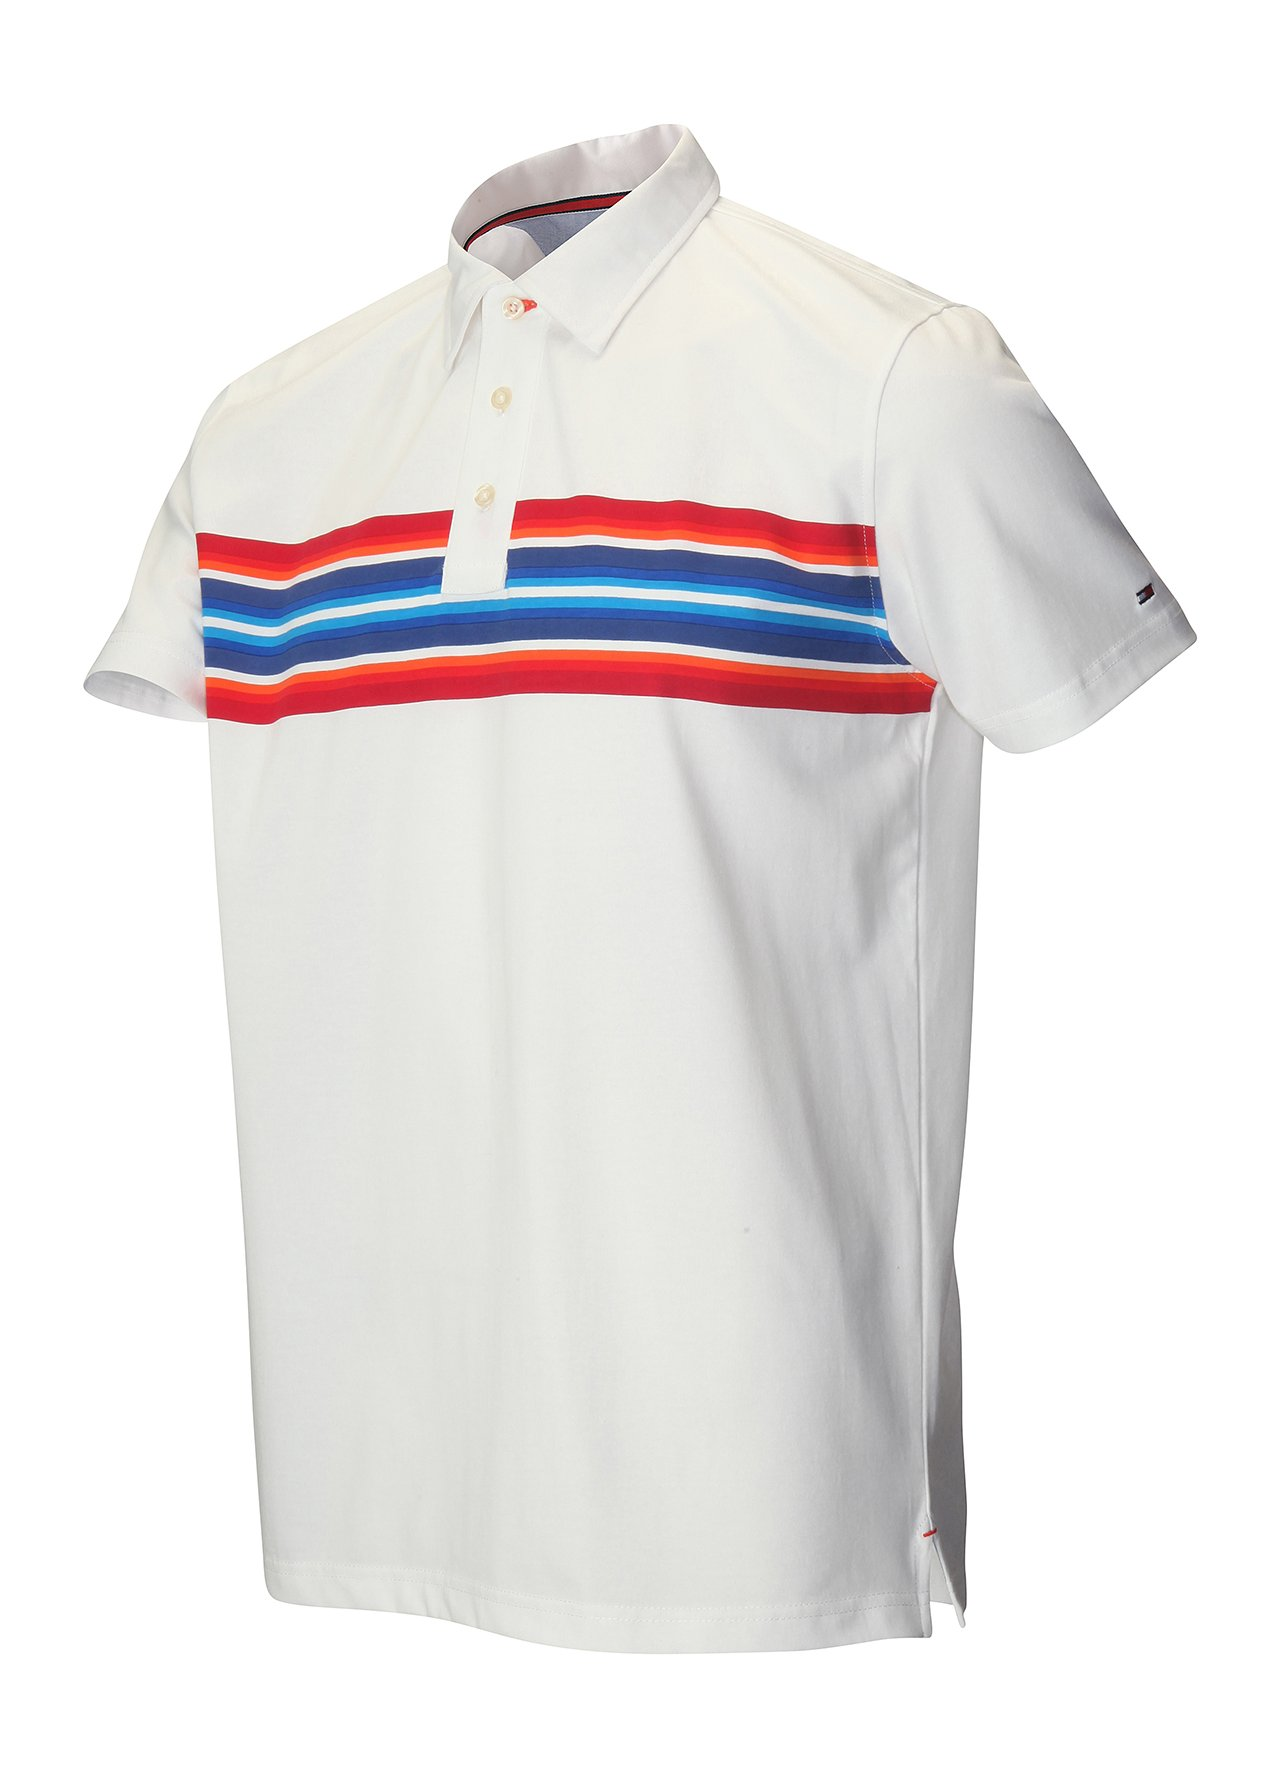 golf clothing shirts white tommy hilfiger neff golf. Black Bedroom Furniture Sets. Home Design Ideas